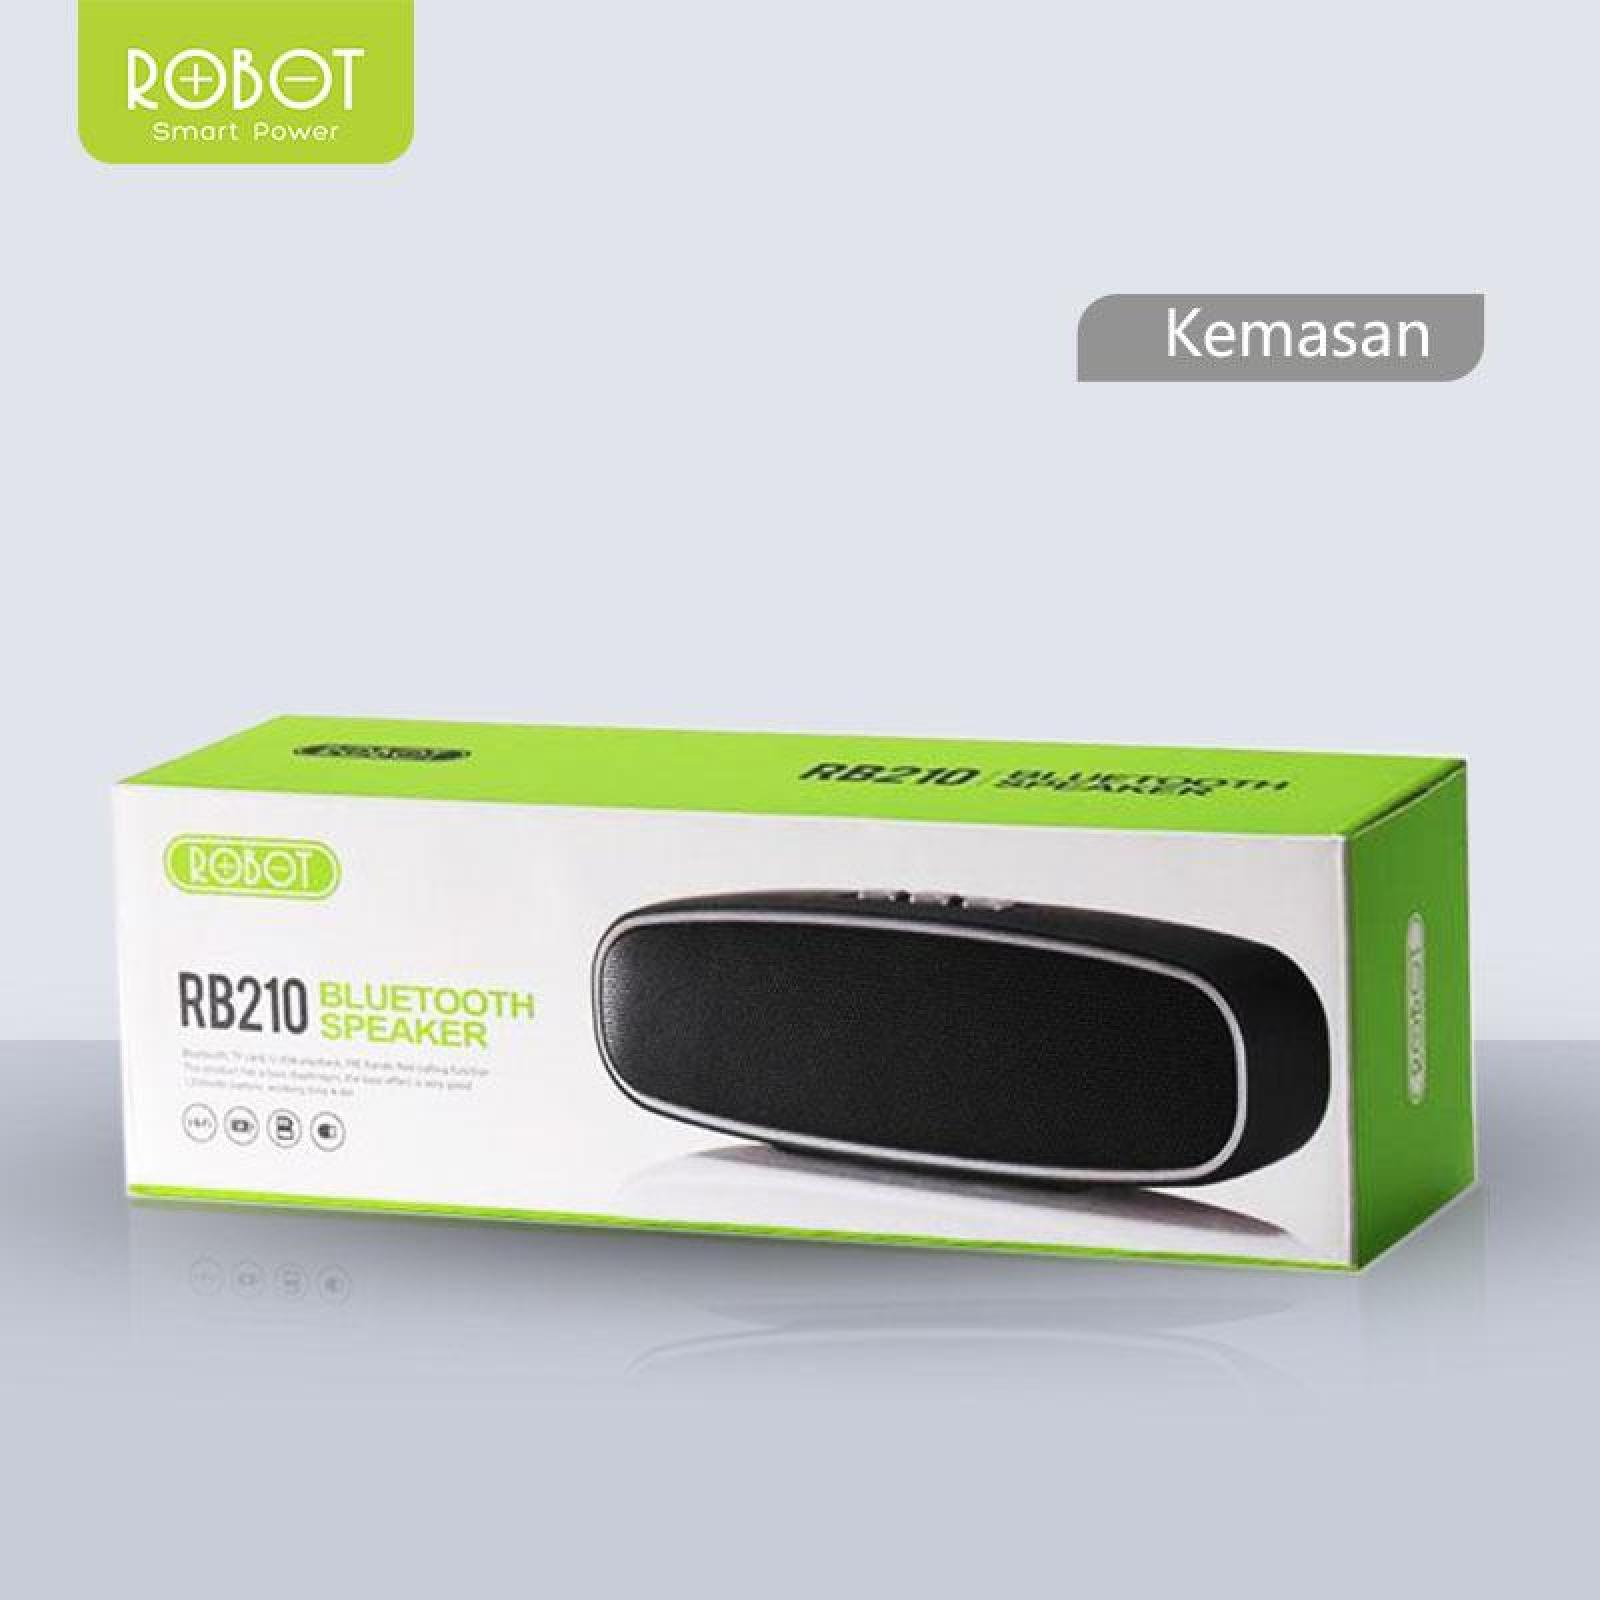 Robot RB210 Stereo Bluetooth